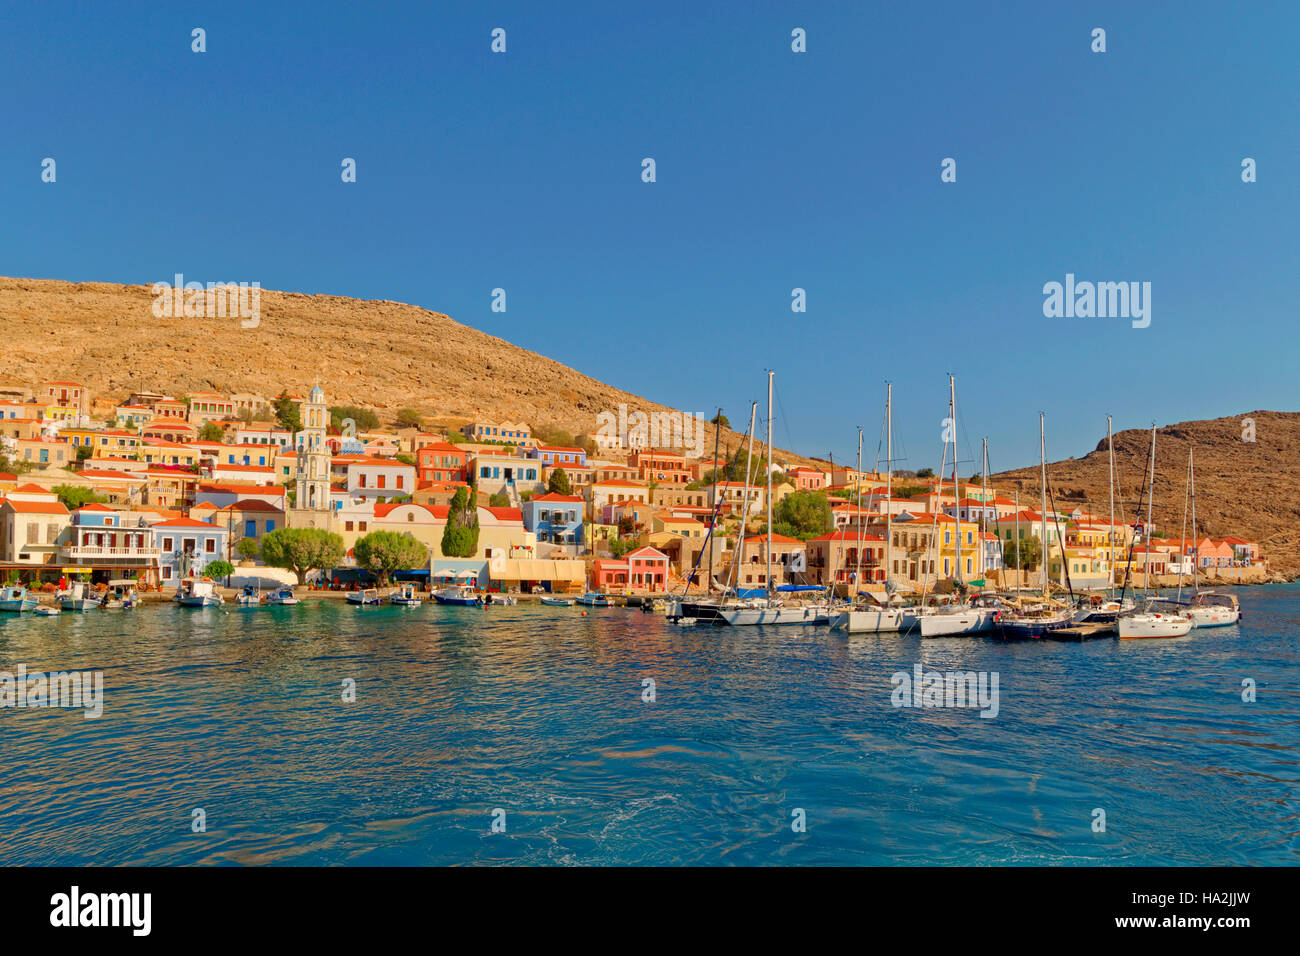 Chalki town and yacht berths, Greek island of Chalki situated off the north coast of Rhodes, Dodecanese Island group, - Stock Image